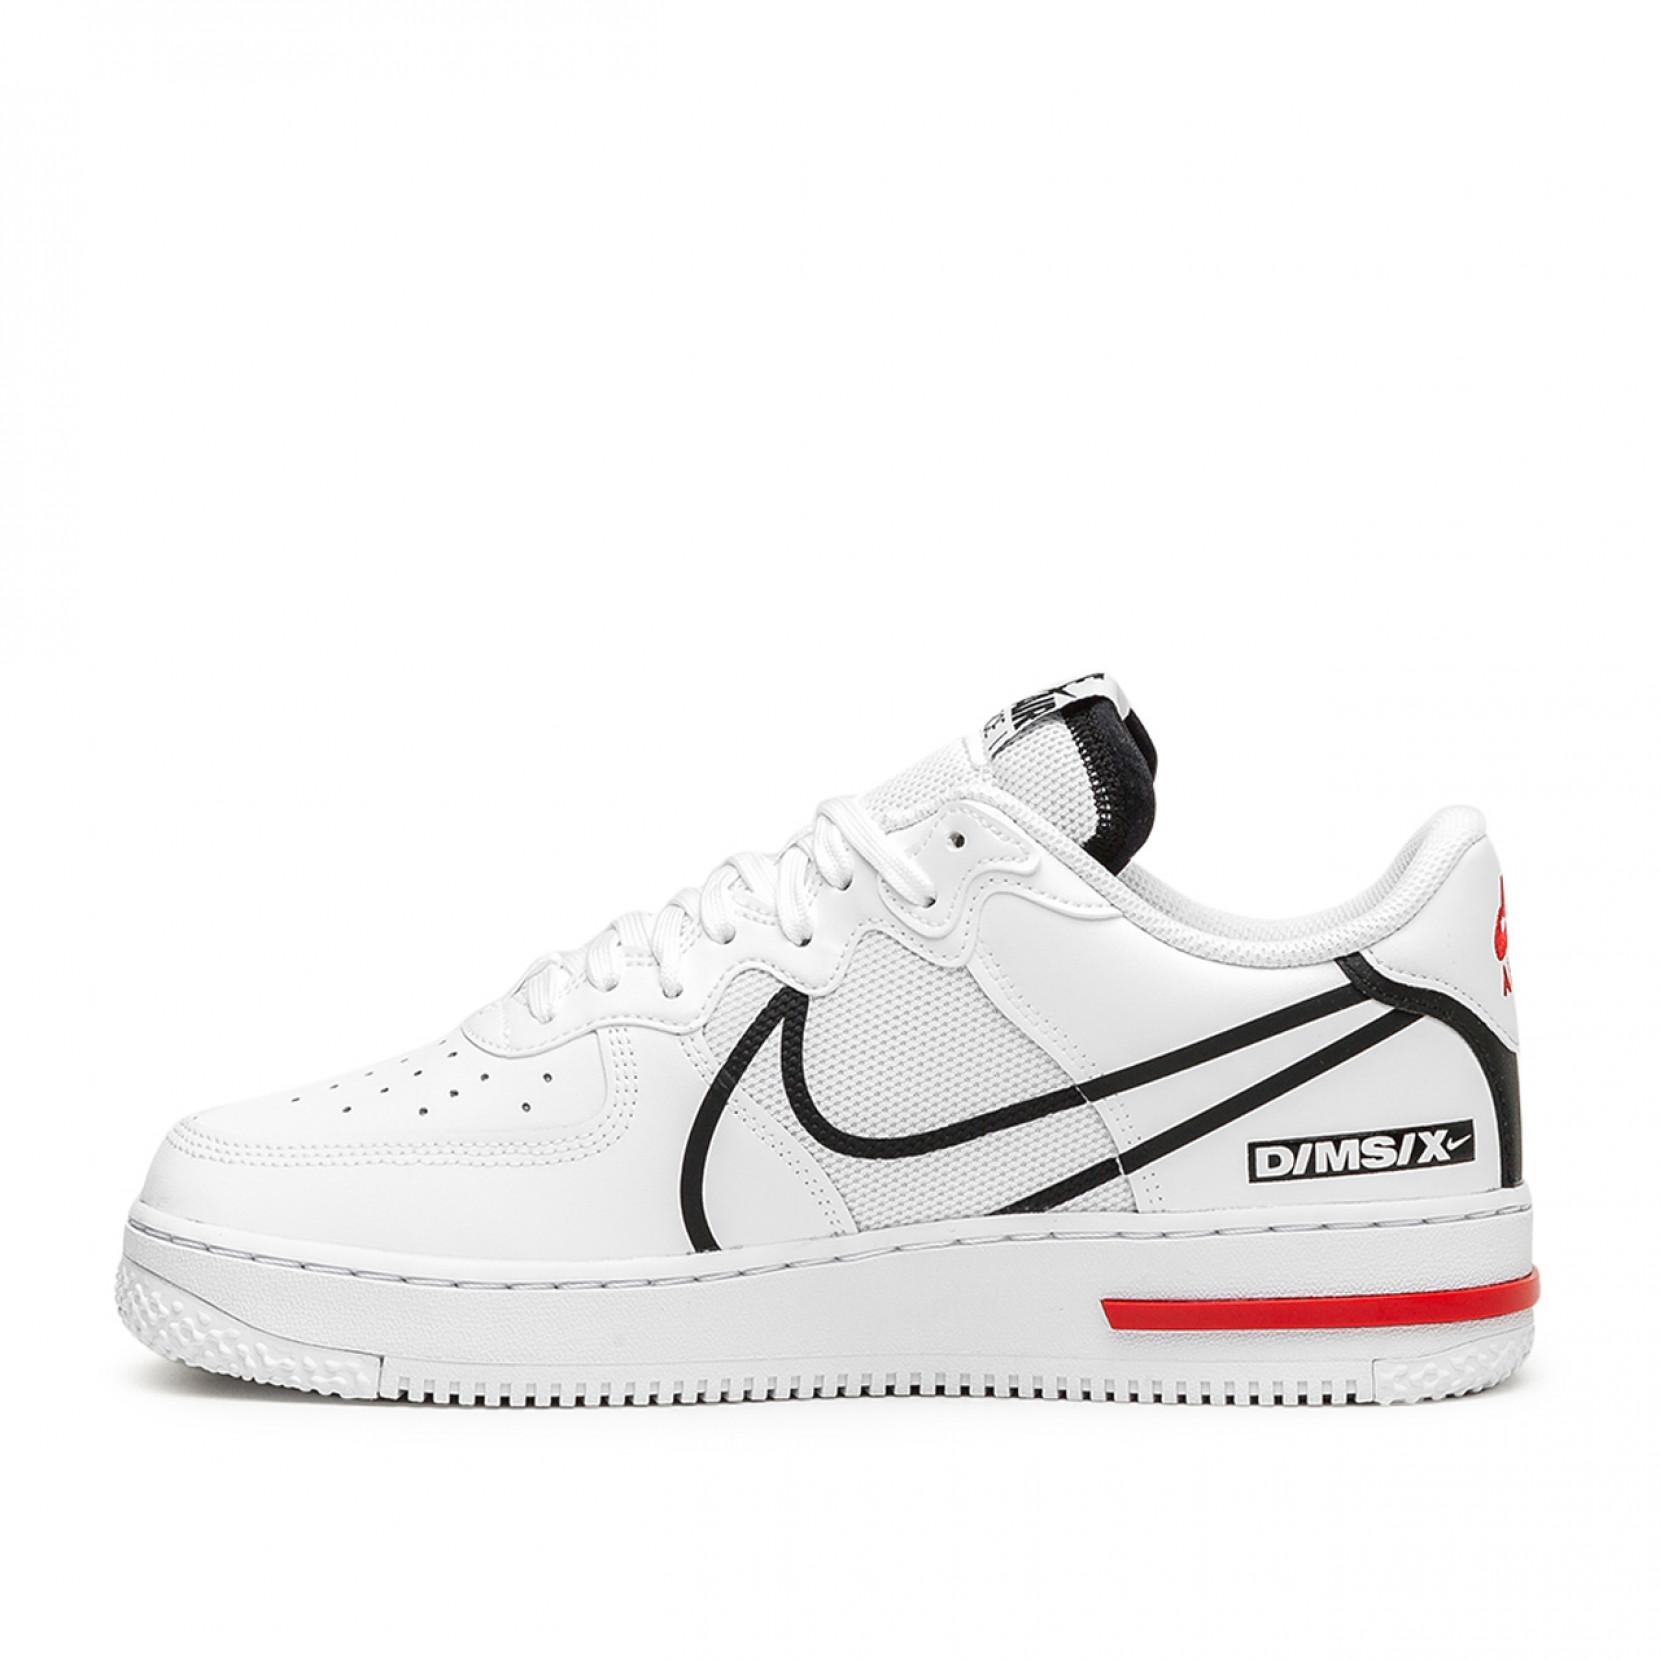 Nike Air Force 1 React Shoe in White/Black (White) for Men - Lyst